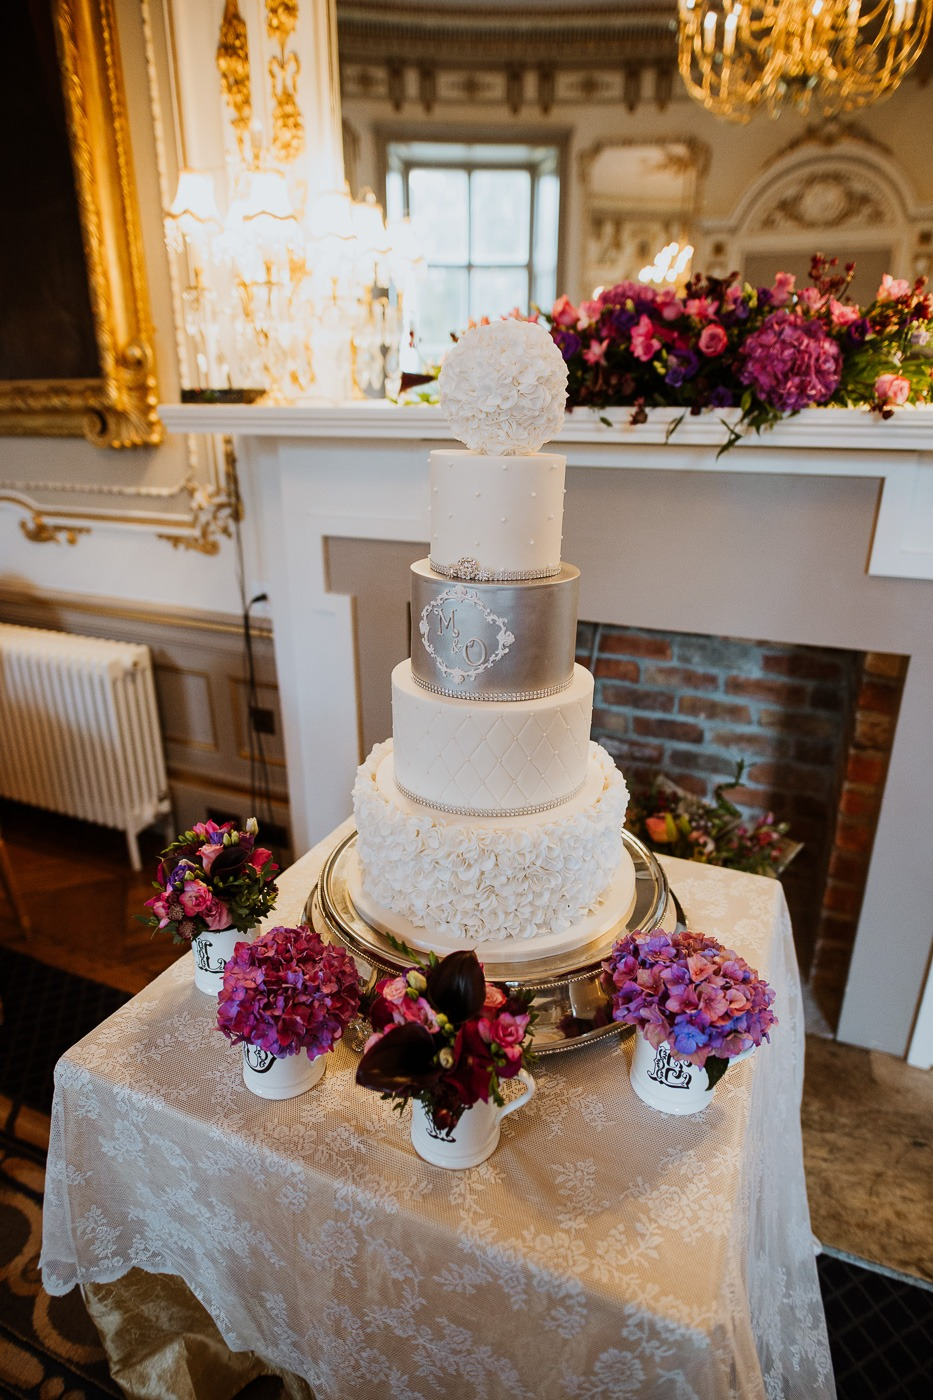 A vase of flowers sitting on top of a wedding cake